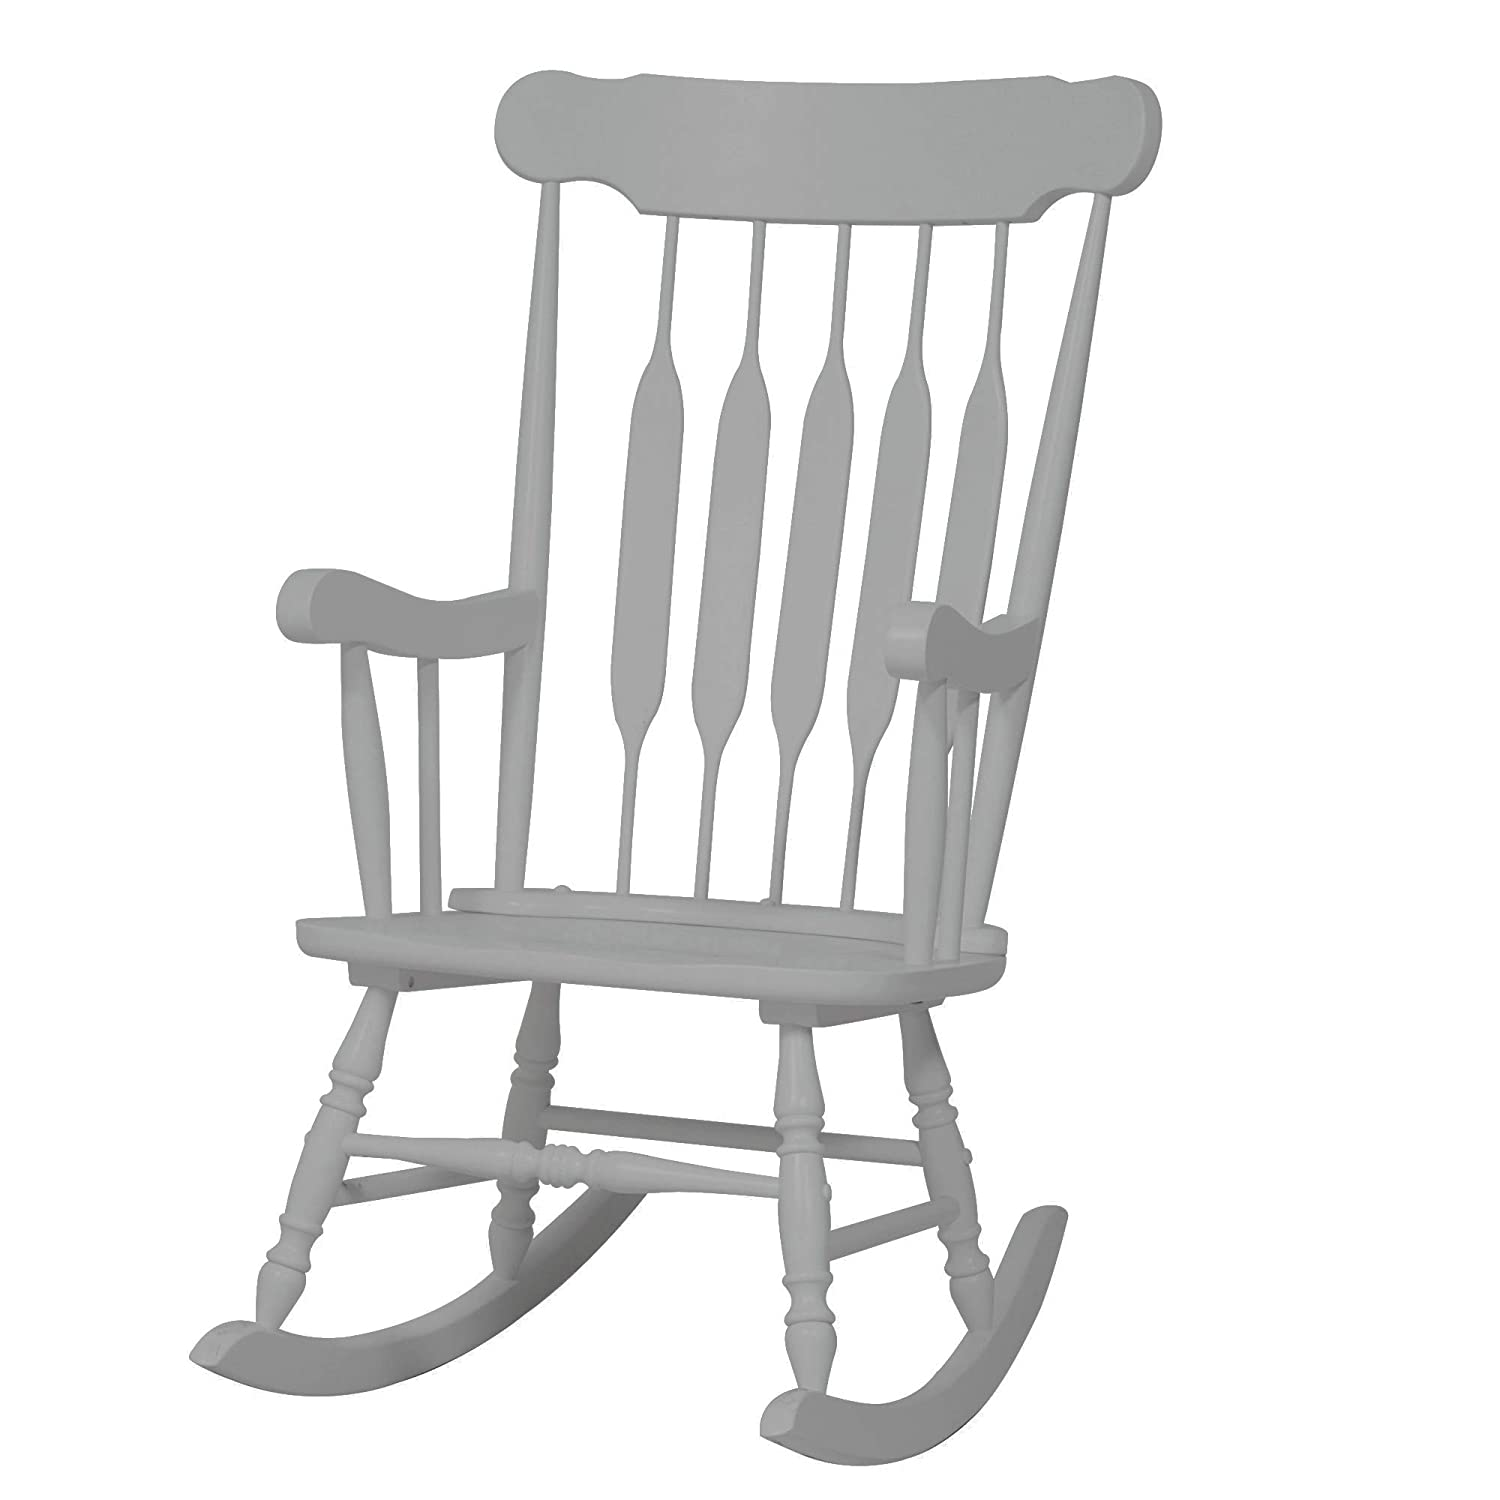 Outstanding Amazon Com Bella 70102015 Adriana Cottage Rocking Chair Onthecornerstone Fun Painted Chair Ideas Images Onthecornerstoneorg